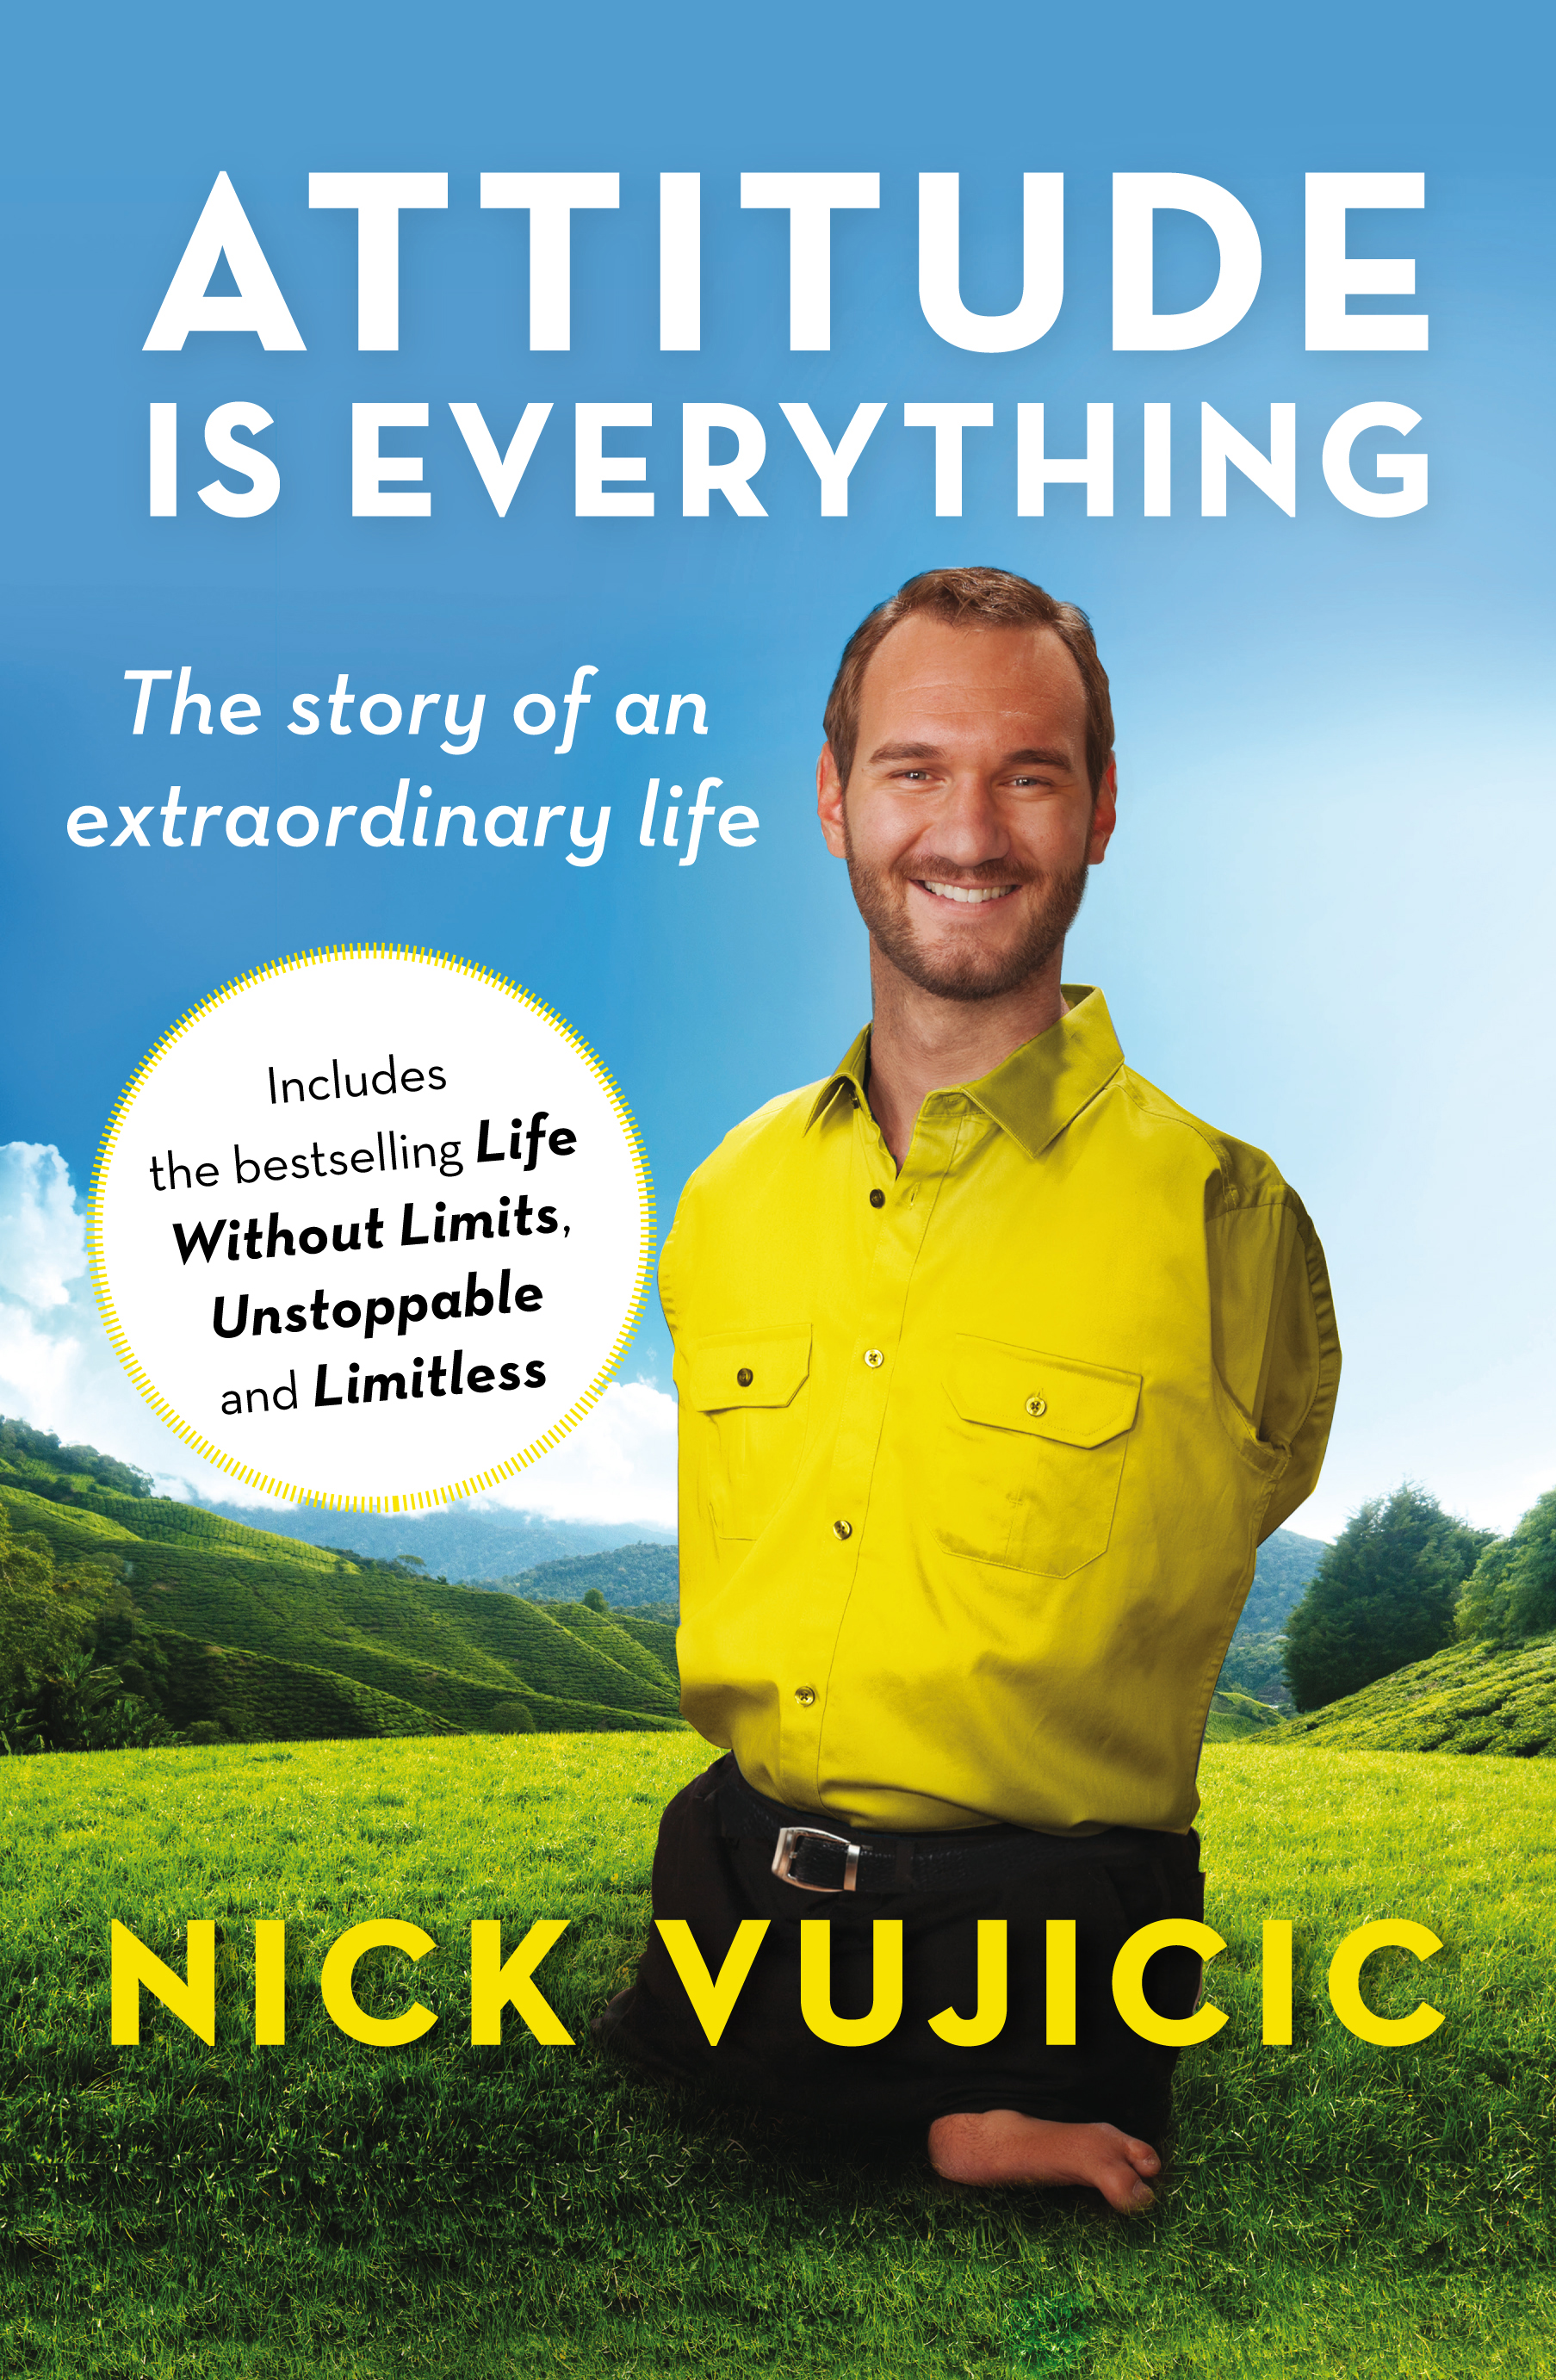 how did nick vujicic lose his limbs